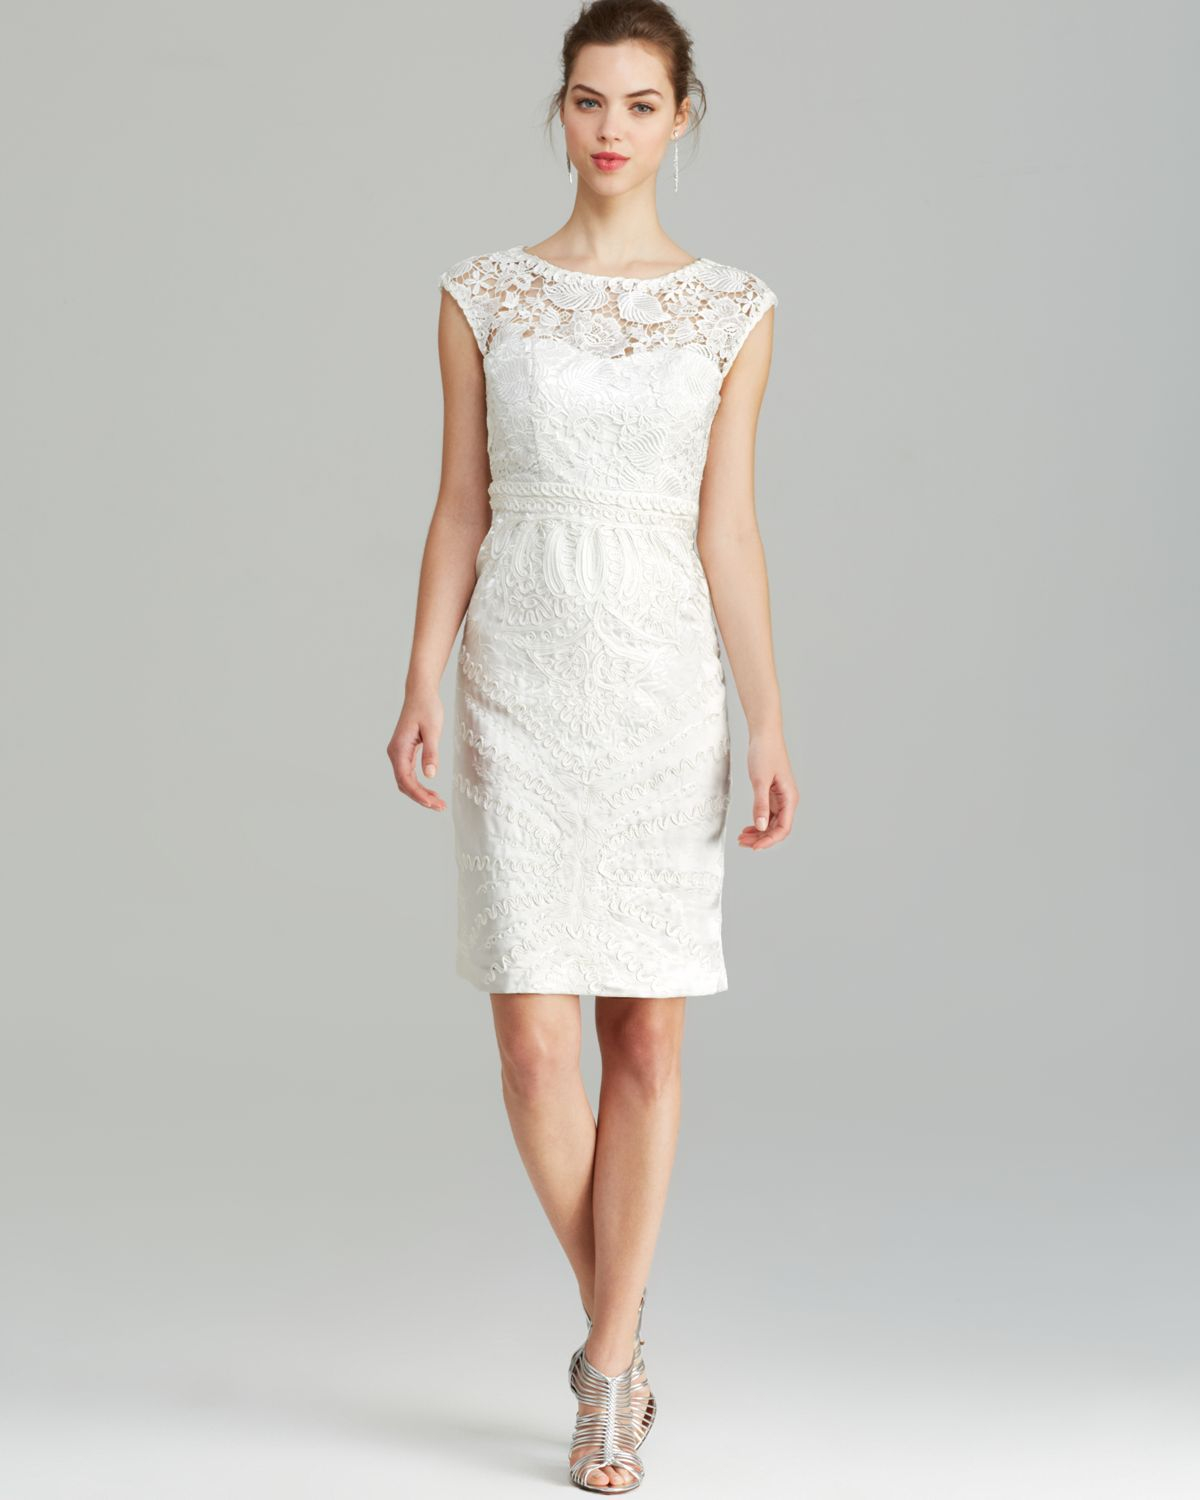 Sue wong Dress Cap Sleeve Eyelet Soutache in White | Lyst